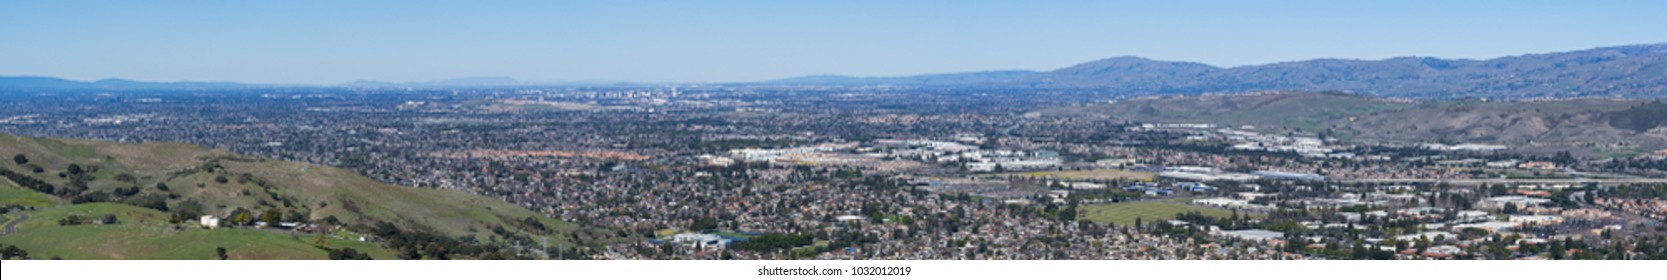 Expansive panorama of the business and residential areas of south San Jose; downtown San Jose in the background; Santa Clara county, San Francisco bay area, California